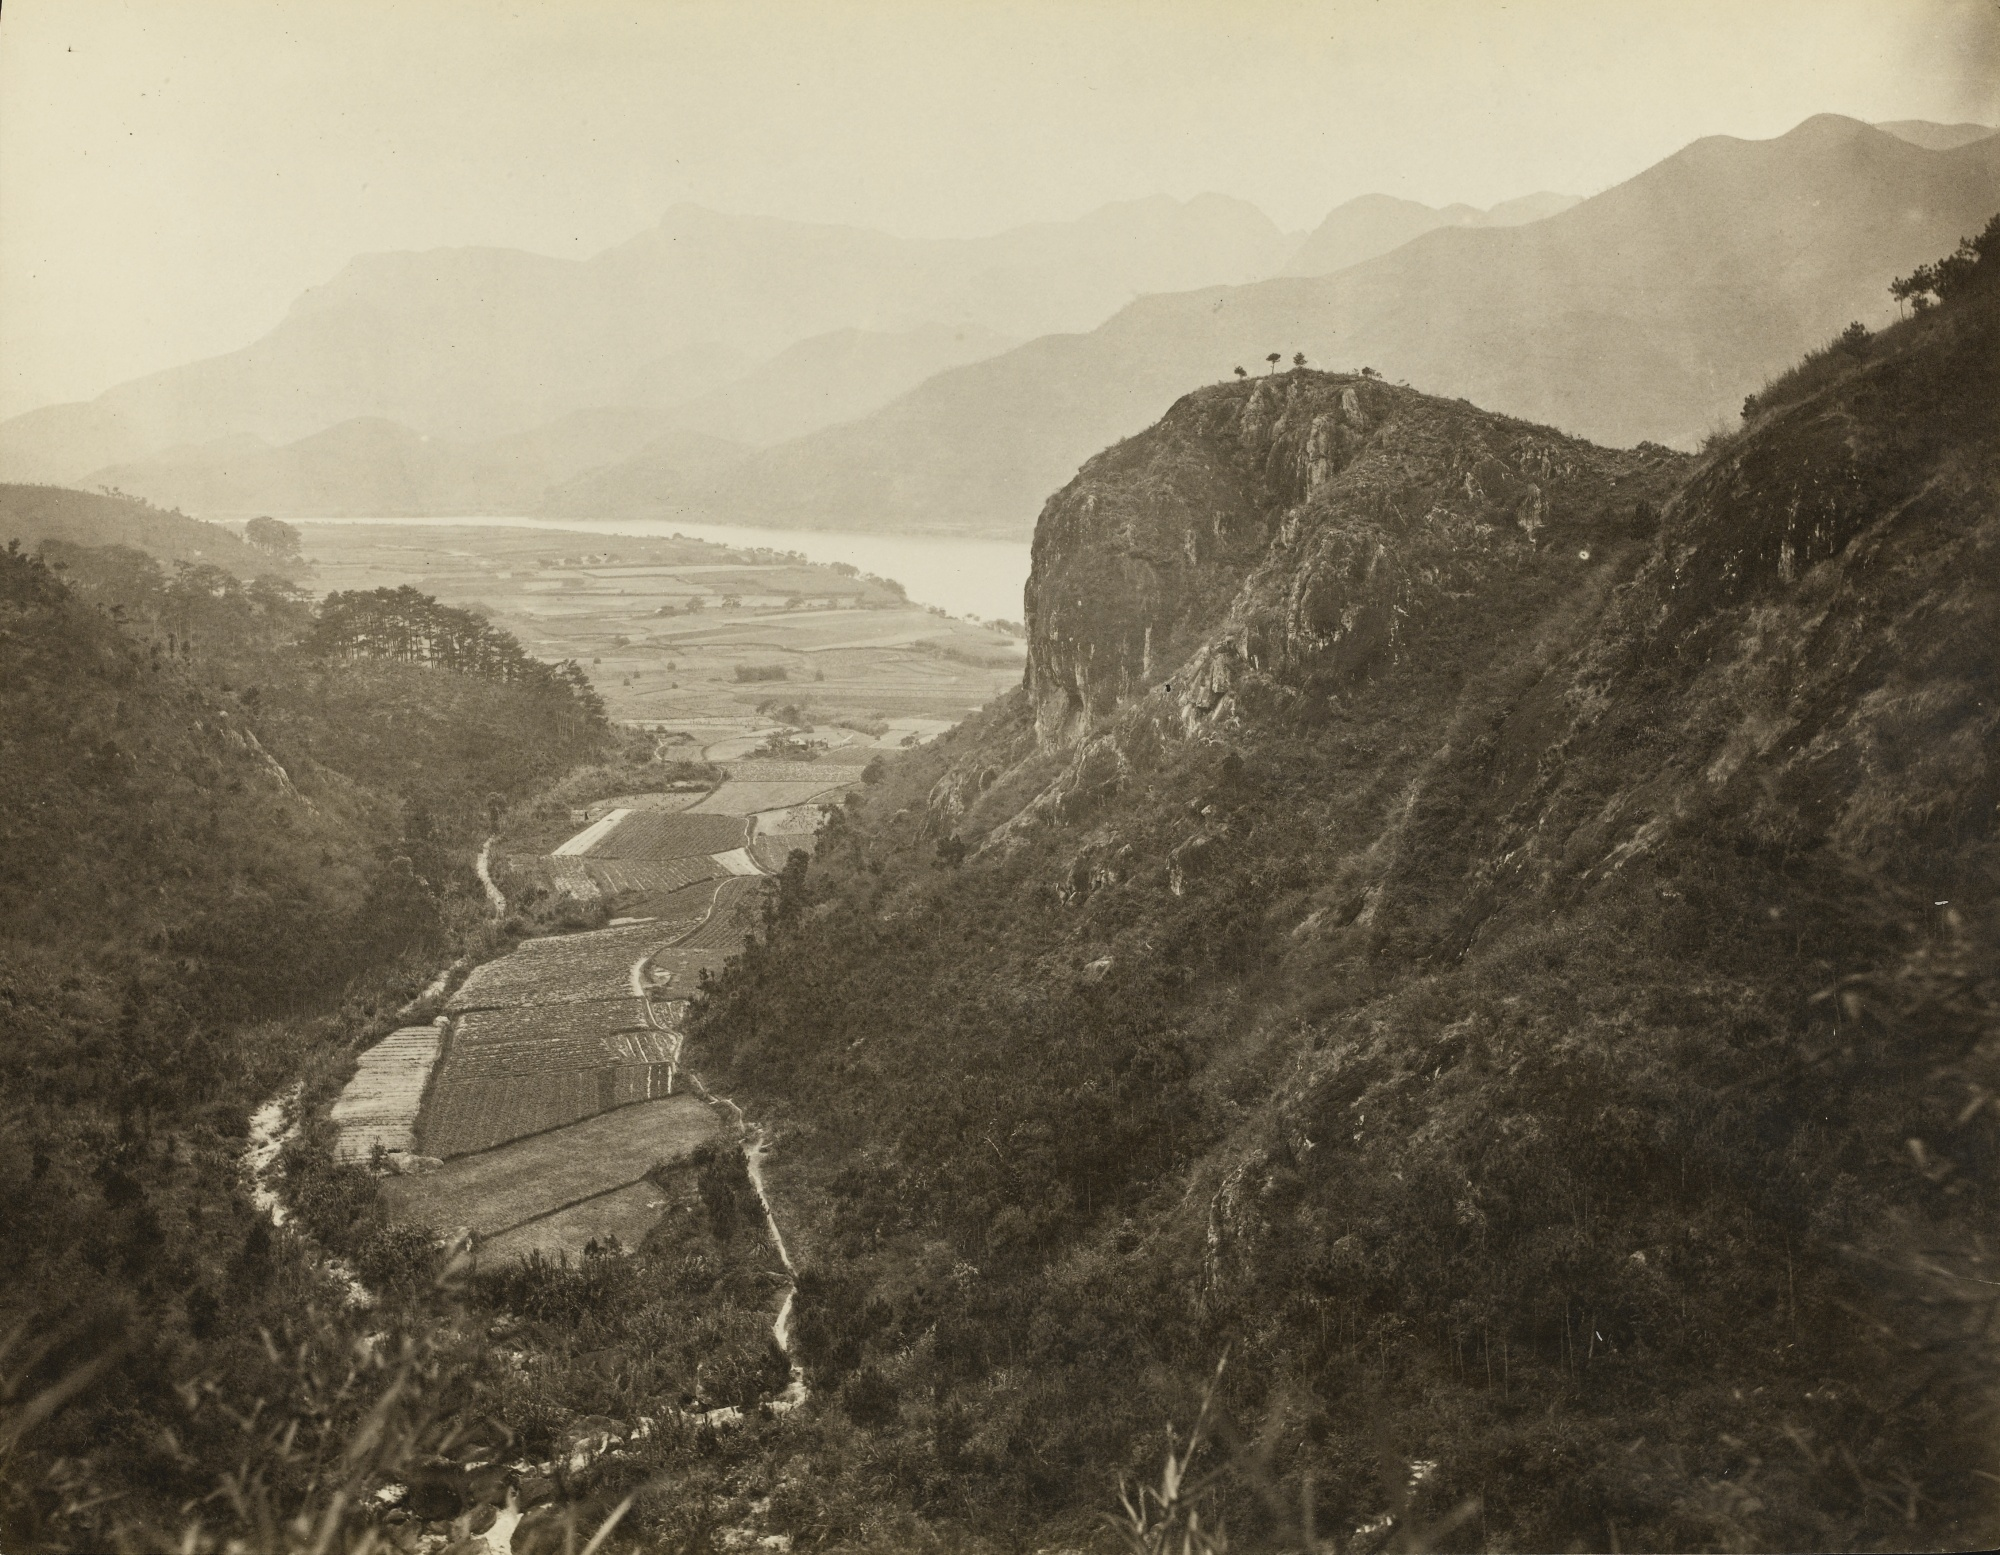 Photographs of Foochow, Peling, Kushan and the Yuen Foo River, c.1869-early 1870s, albumen print